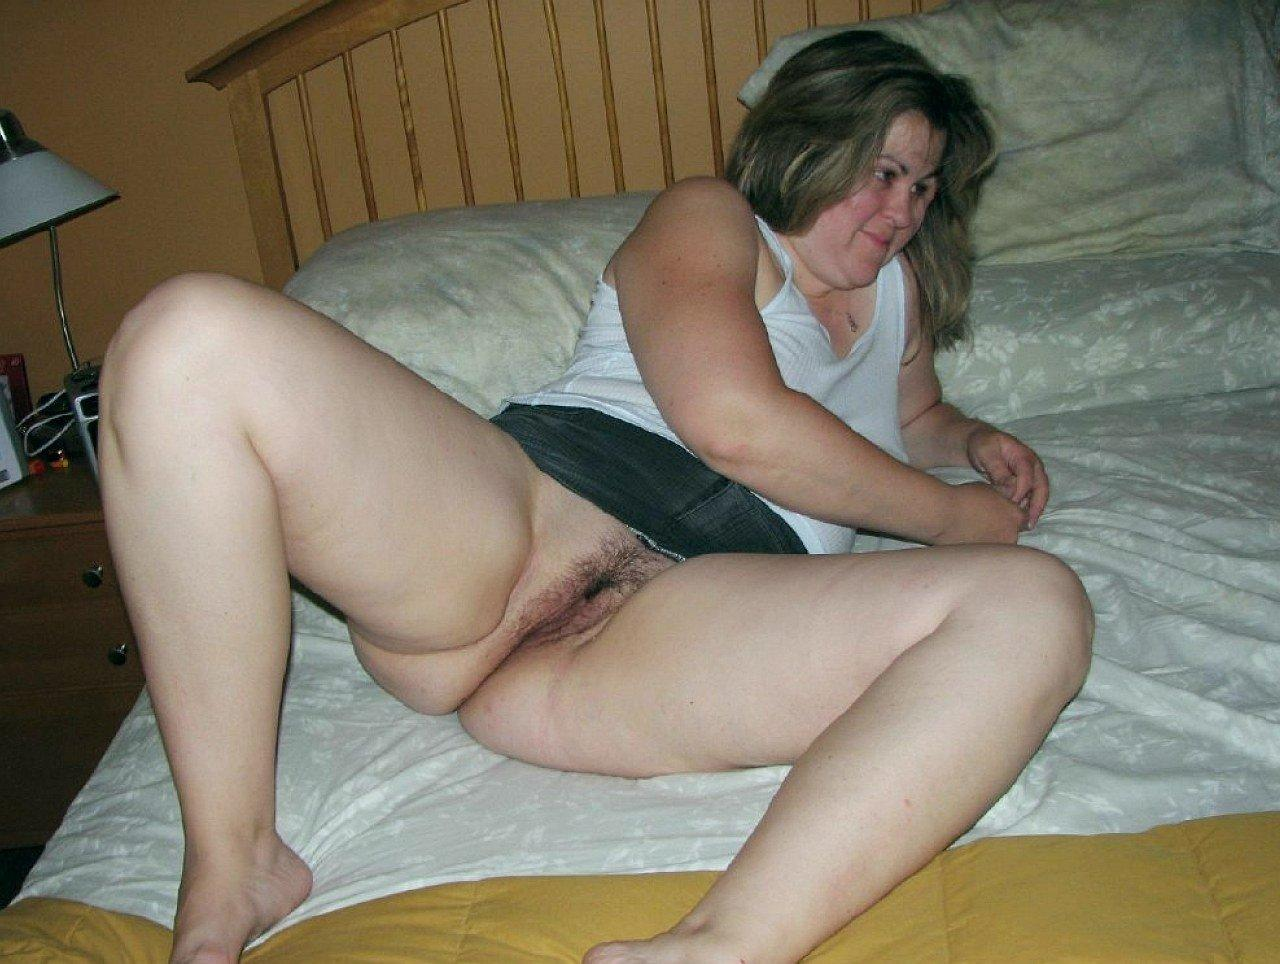 pity, that skinny mature naked milfs discussion Certainly. And have